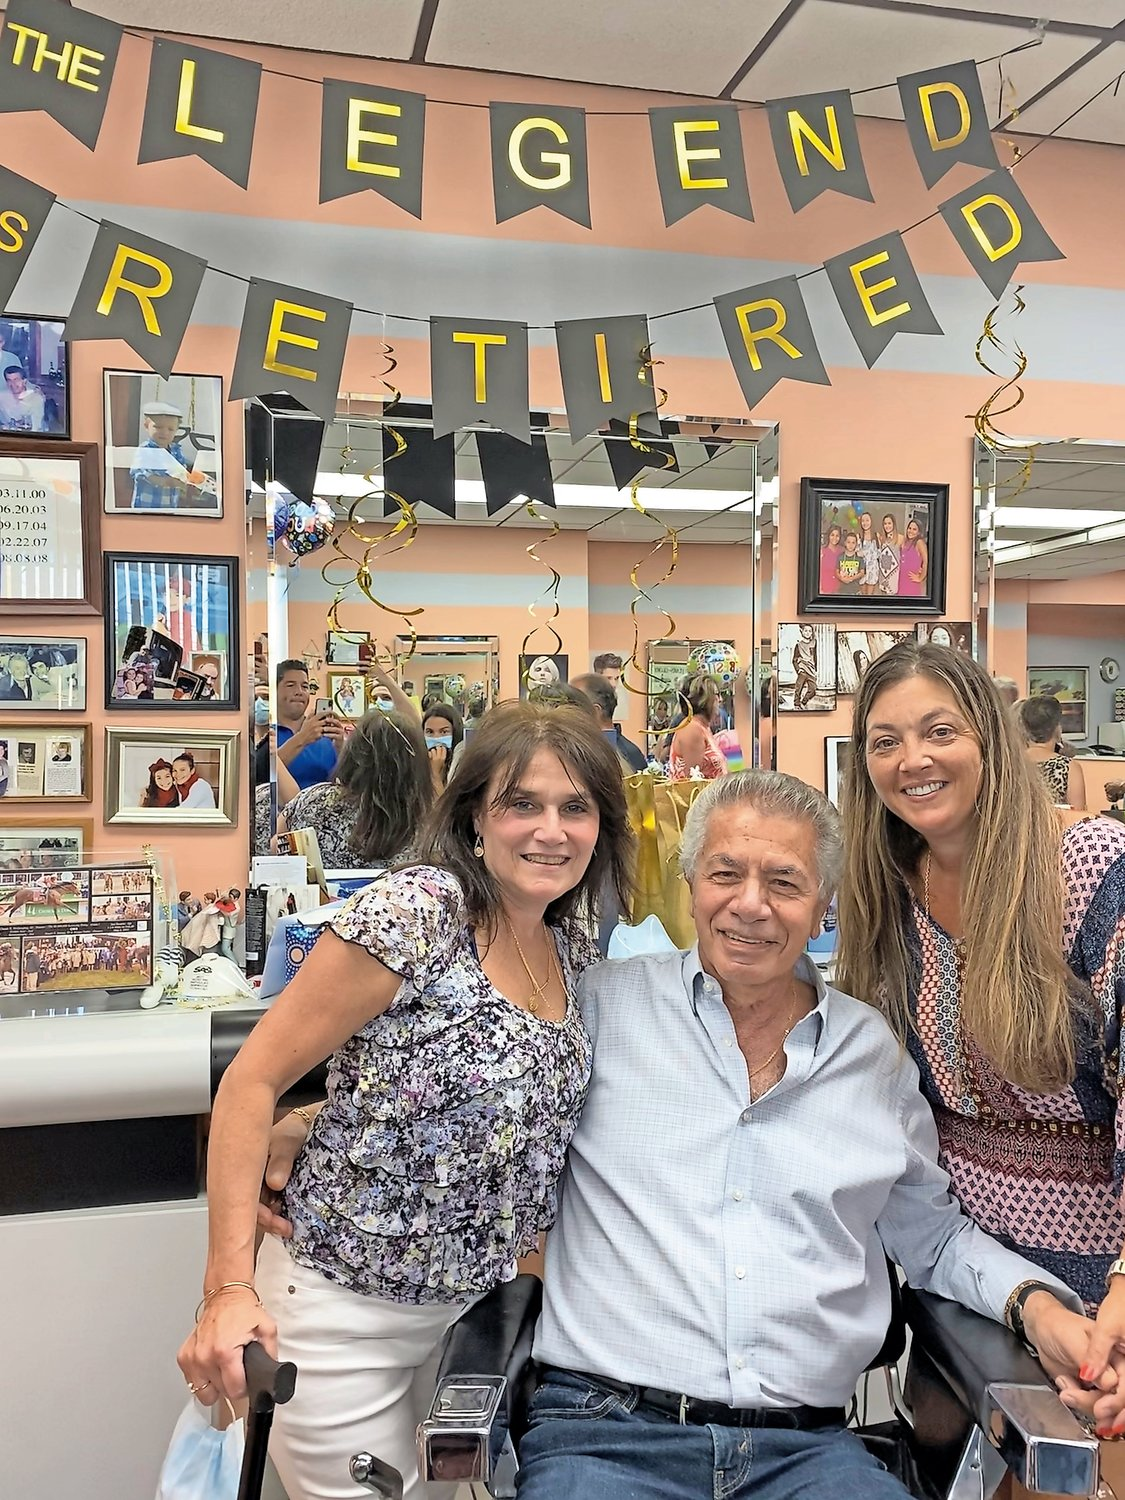 John Gigante retired from A Cut Above, on Hempstead Turnpike in Elmont, after 45 years last Saturday. He celebrated with employees Donna DeGiuli, left, and Kathy Chernow.